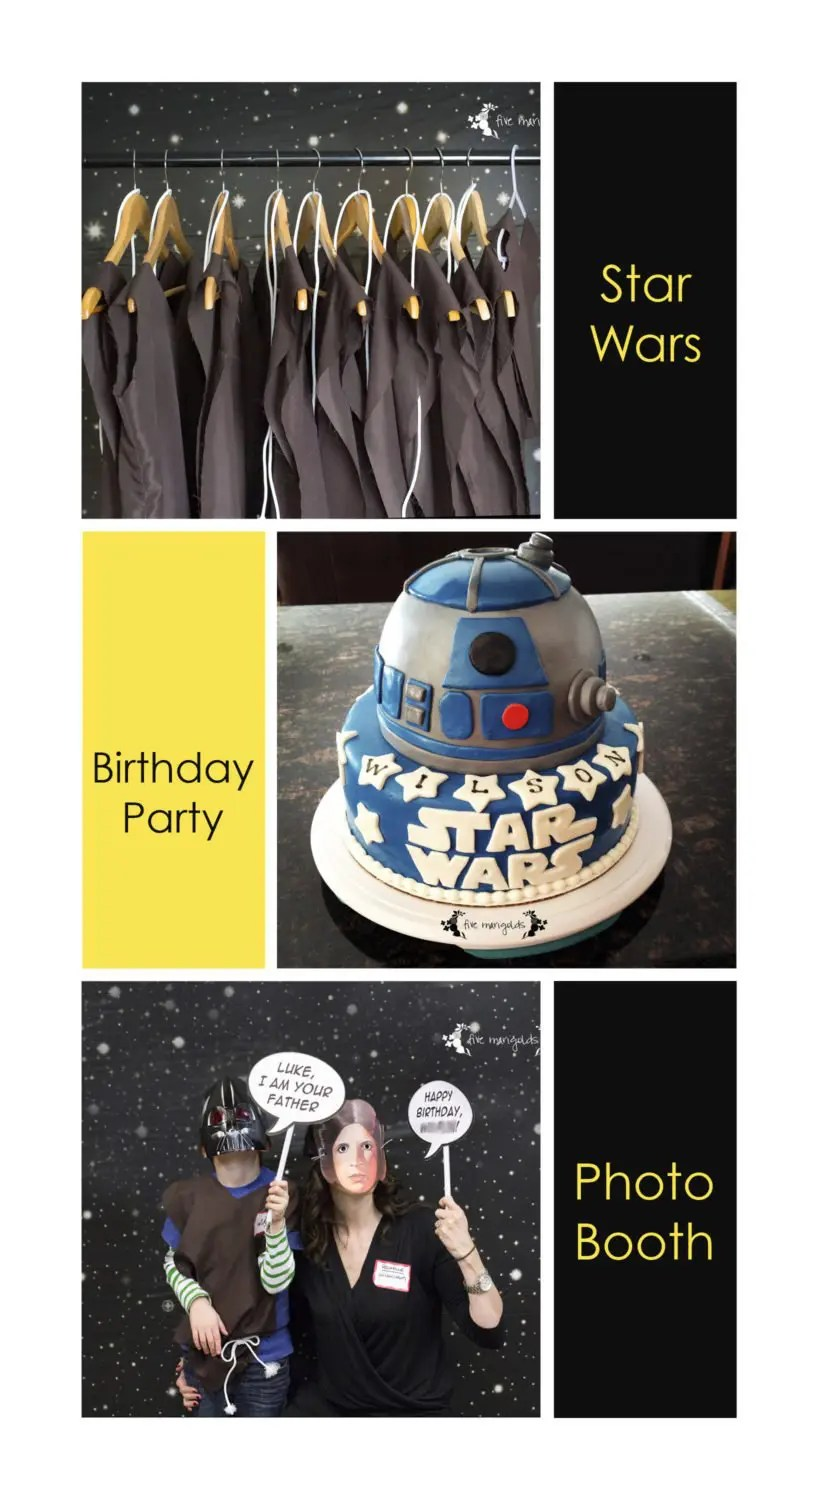 Star Wars Birthday Party Photo Booth | www.fivemarigolds.com